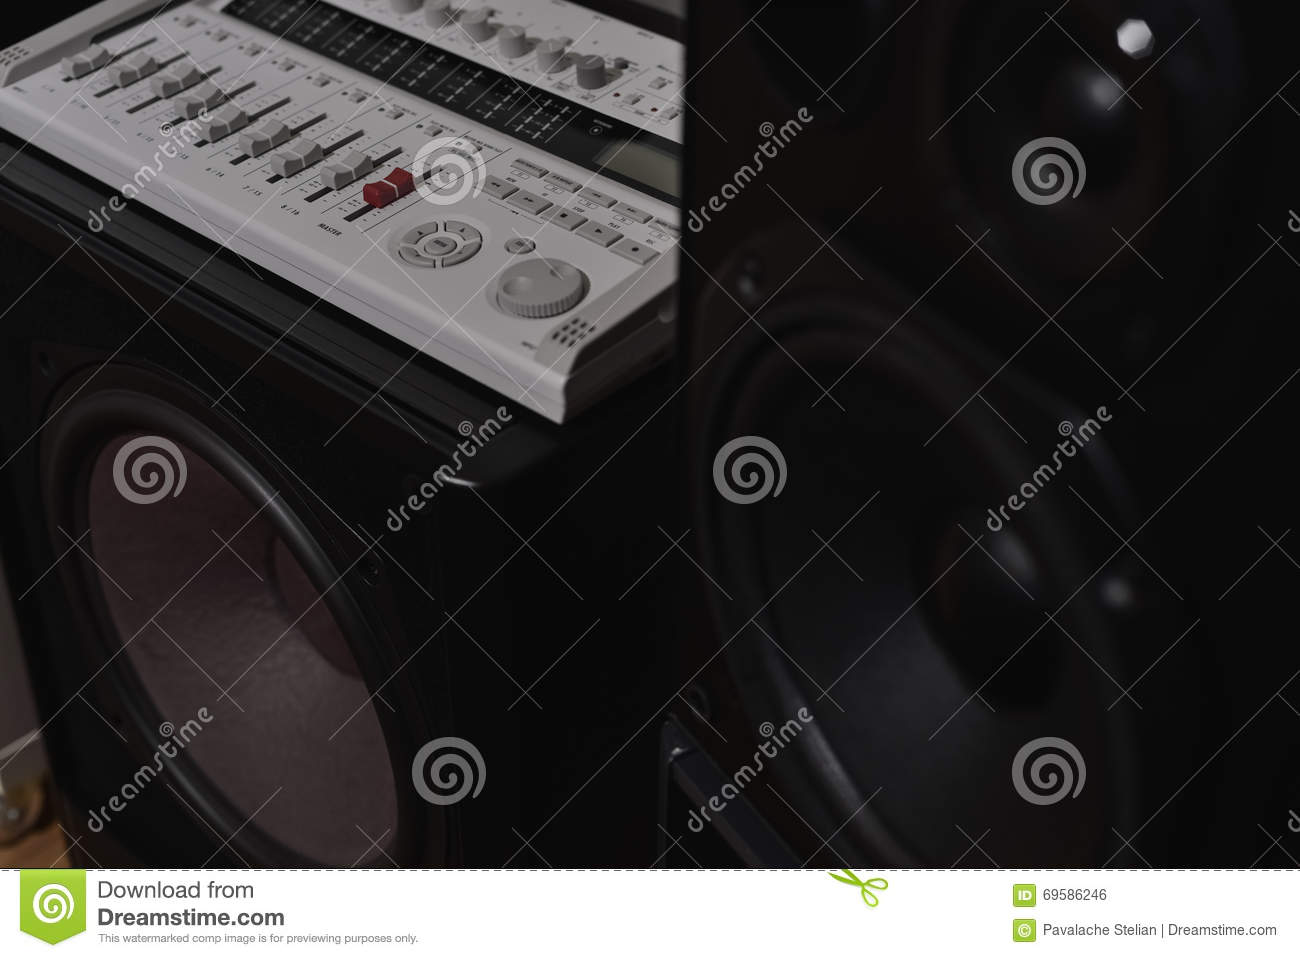 how to connect subwoofer to mixer